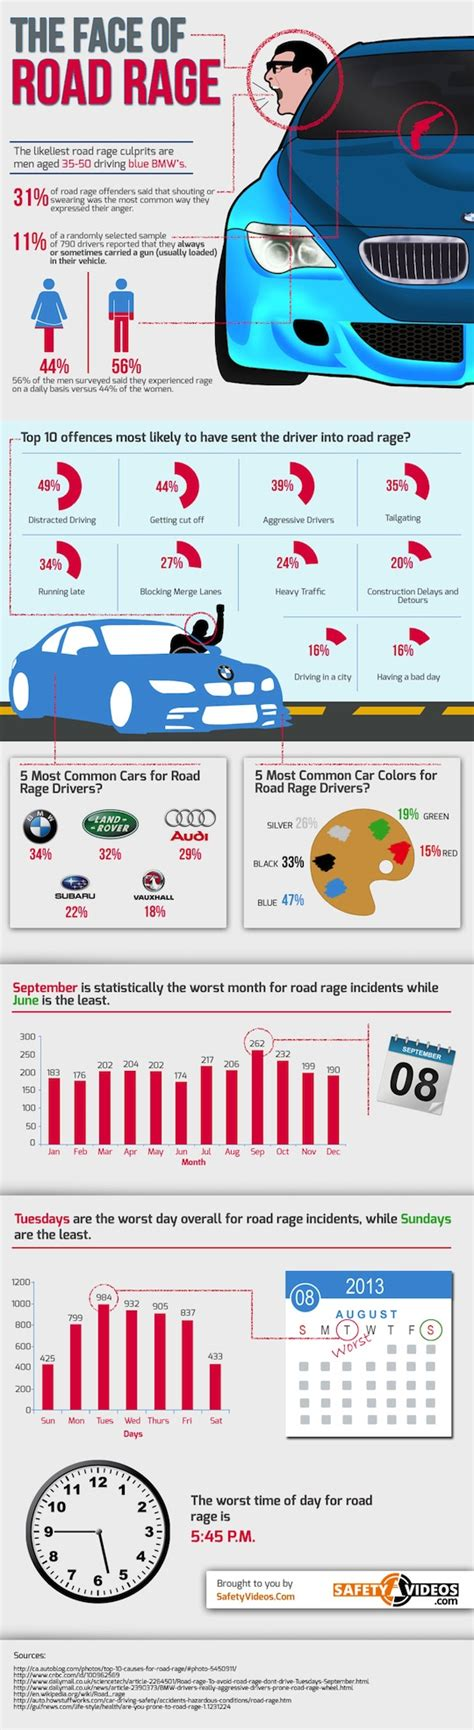 Ways To Prevent Road Rage by 5 Ways To Avoid Road Rage